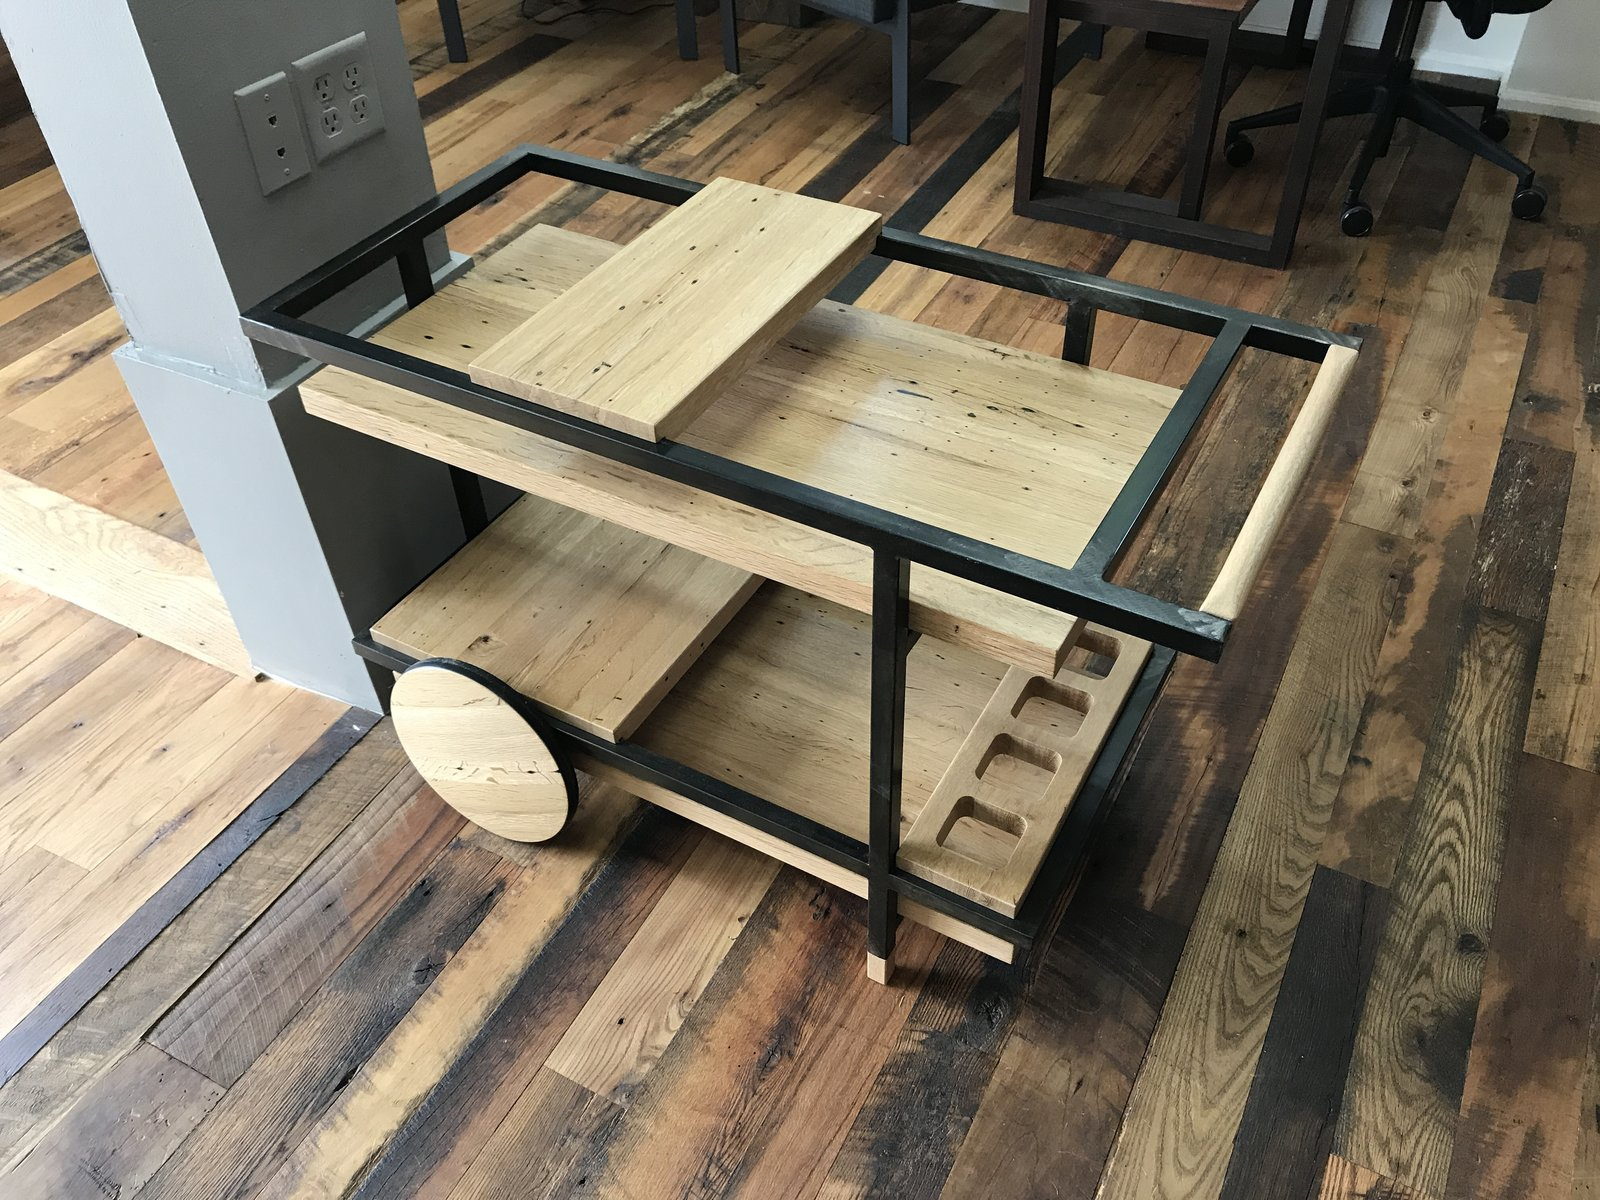 Artisan Bryan Danger's bar cart in reclaimed oak at the Pioneer Millworks open house.  Photo 12 of 14 in Design Week Portland Showcases the Talent of its Vibrant Design Community